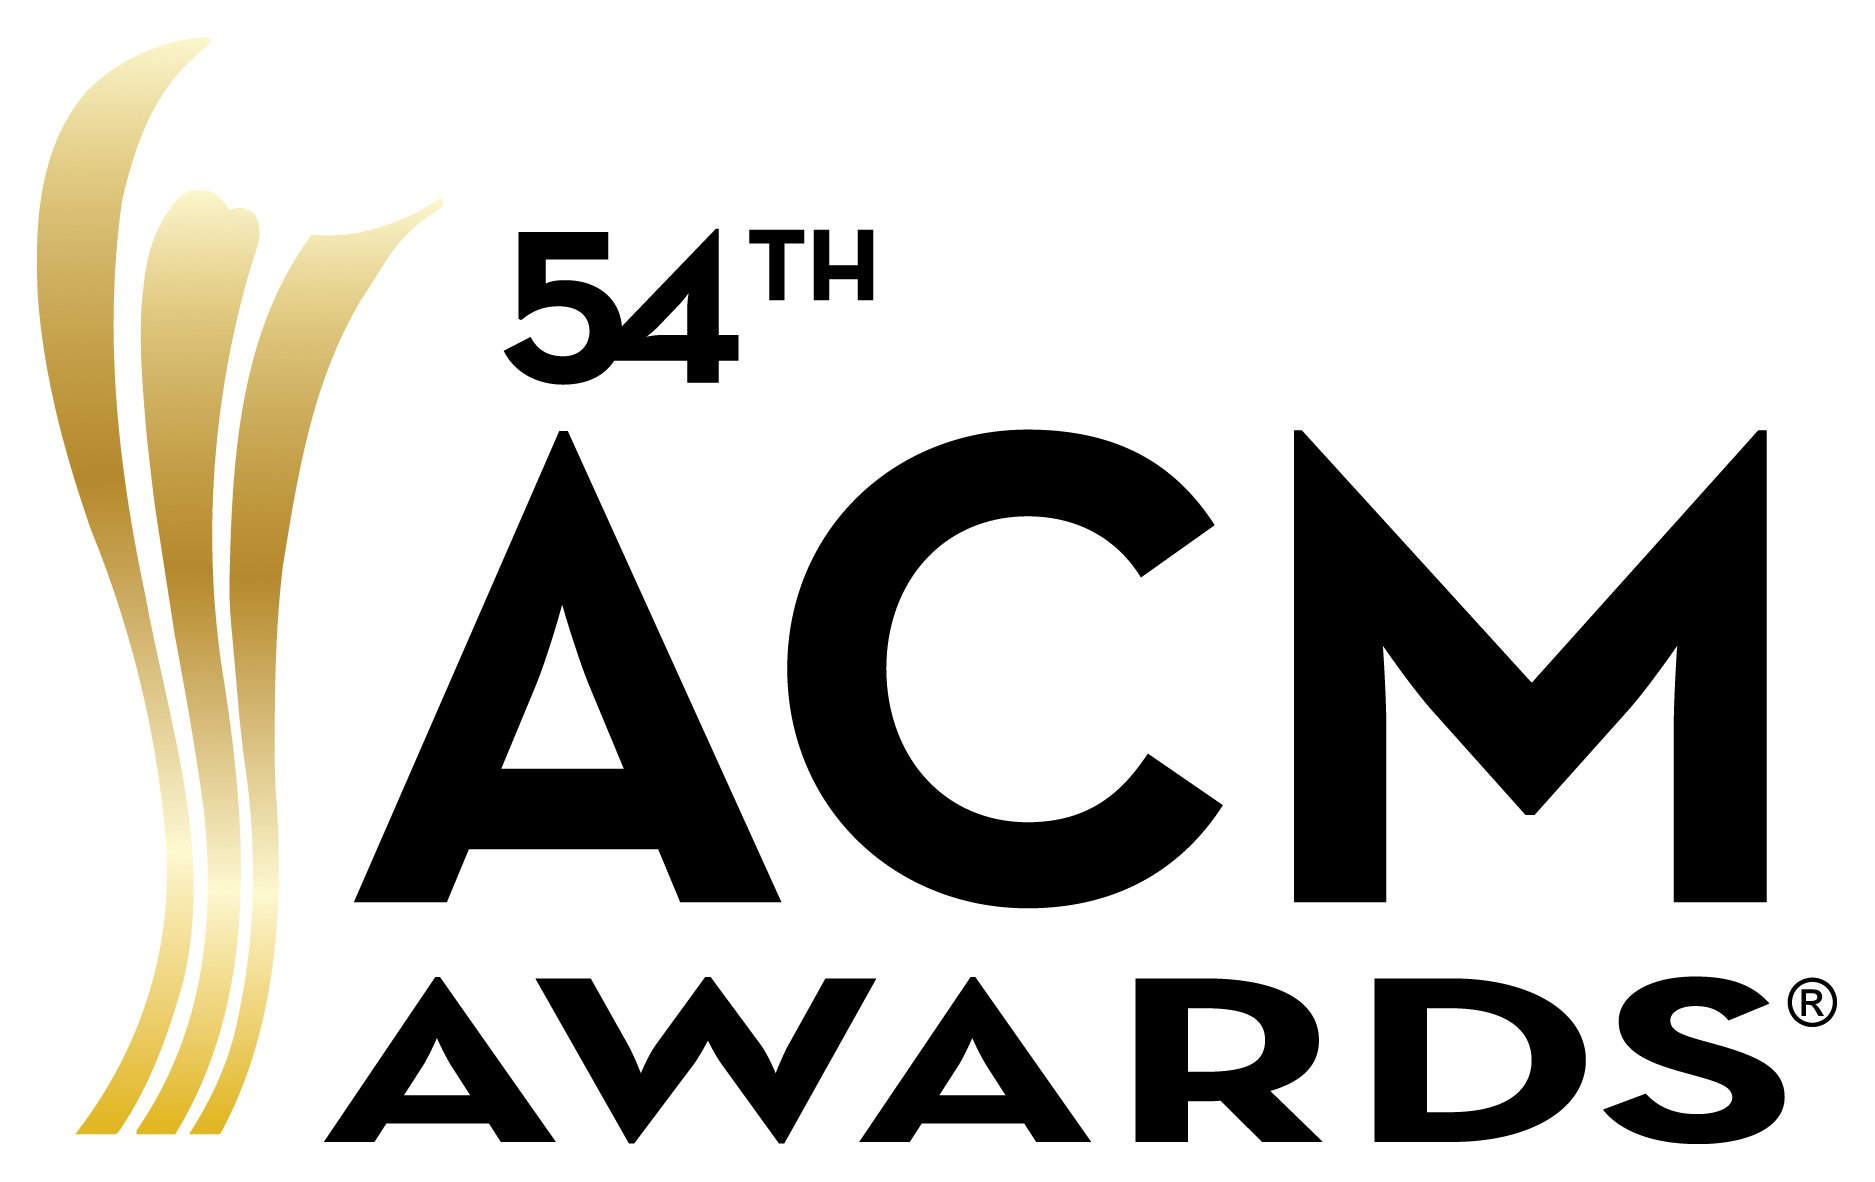 32f98ff4679 The Academy of Country Music announced Monday (Dec. 3) that submissions for  the 54th Academy of Country Music Awards are now open, through Jan. 4, 2019.